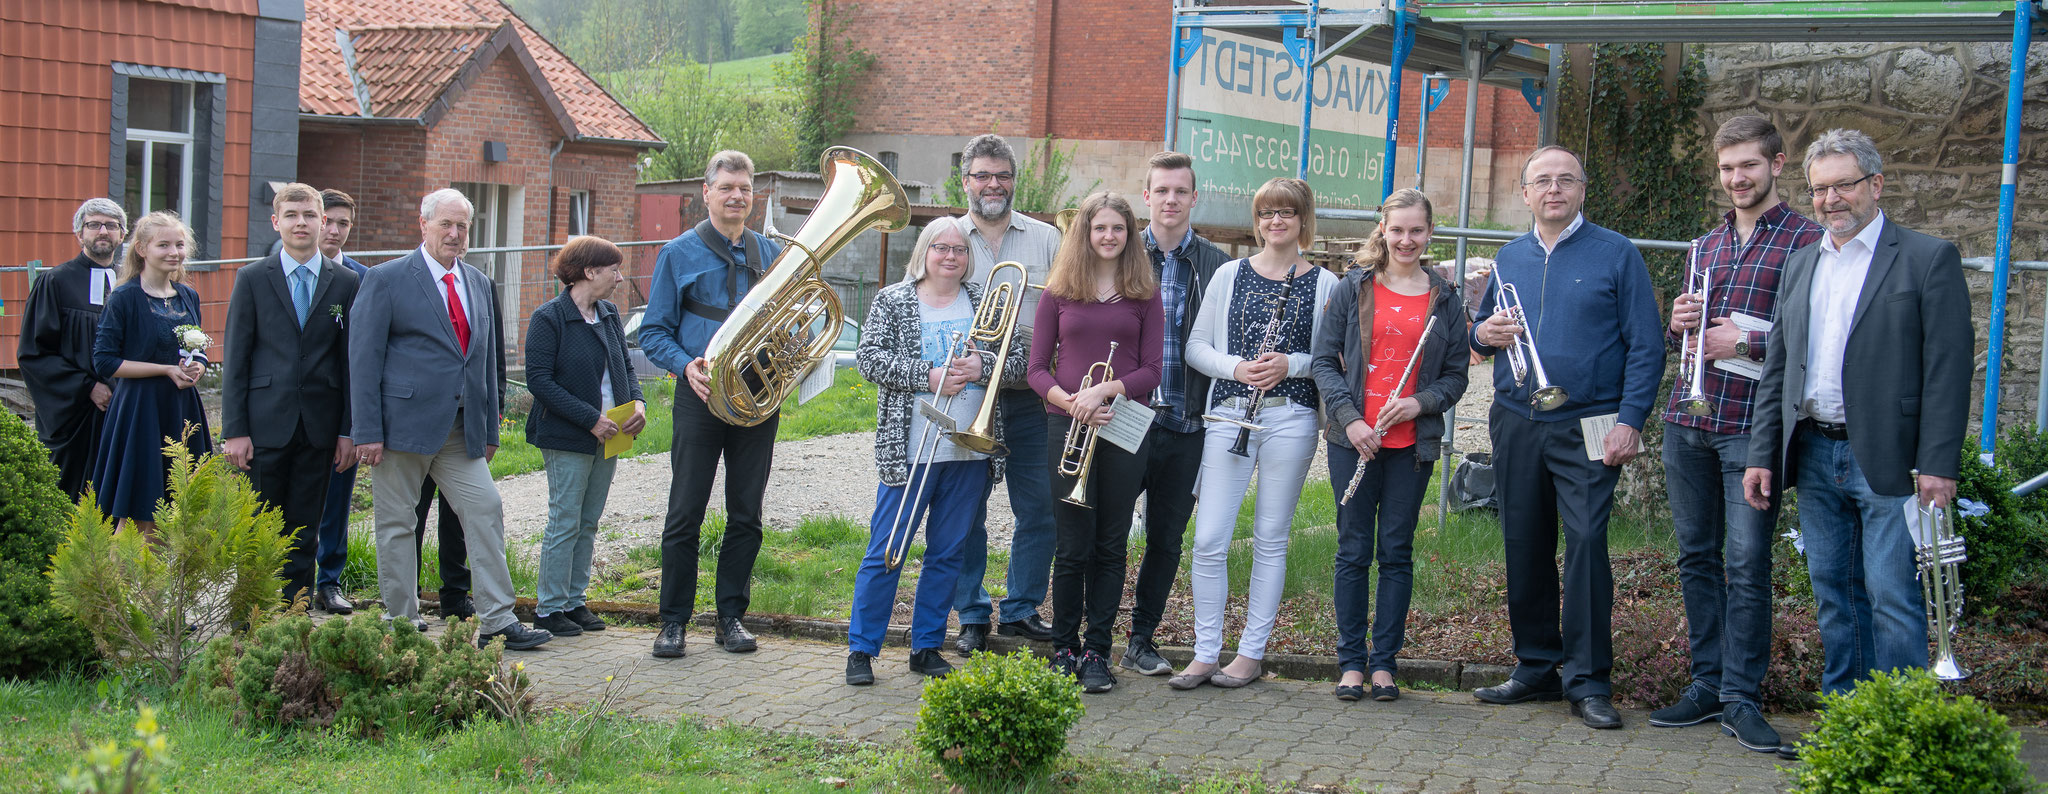 Konfirmation 2018 in Marienhagen - Links: Die Konfirmanden